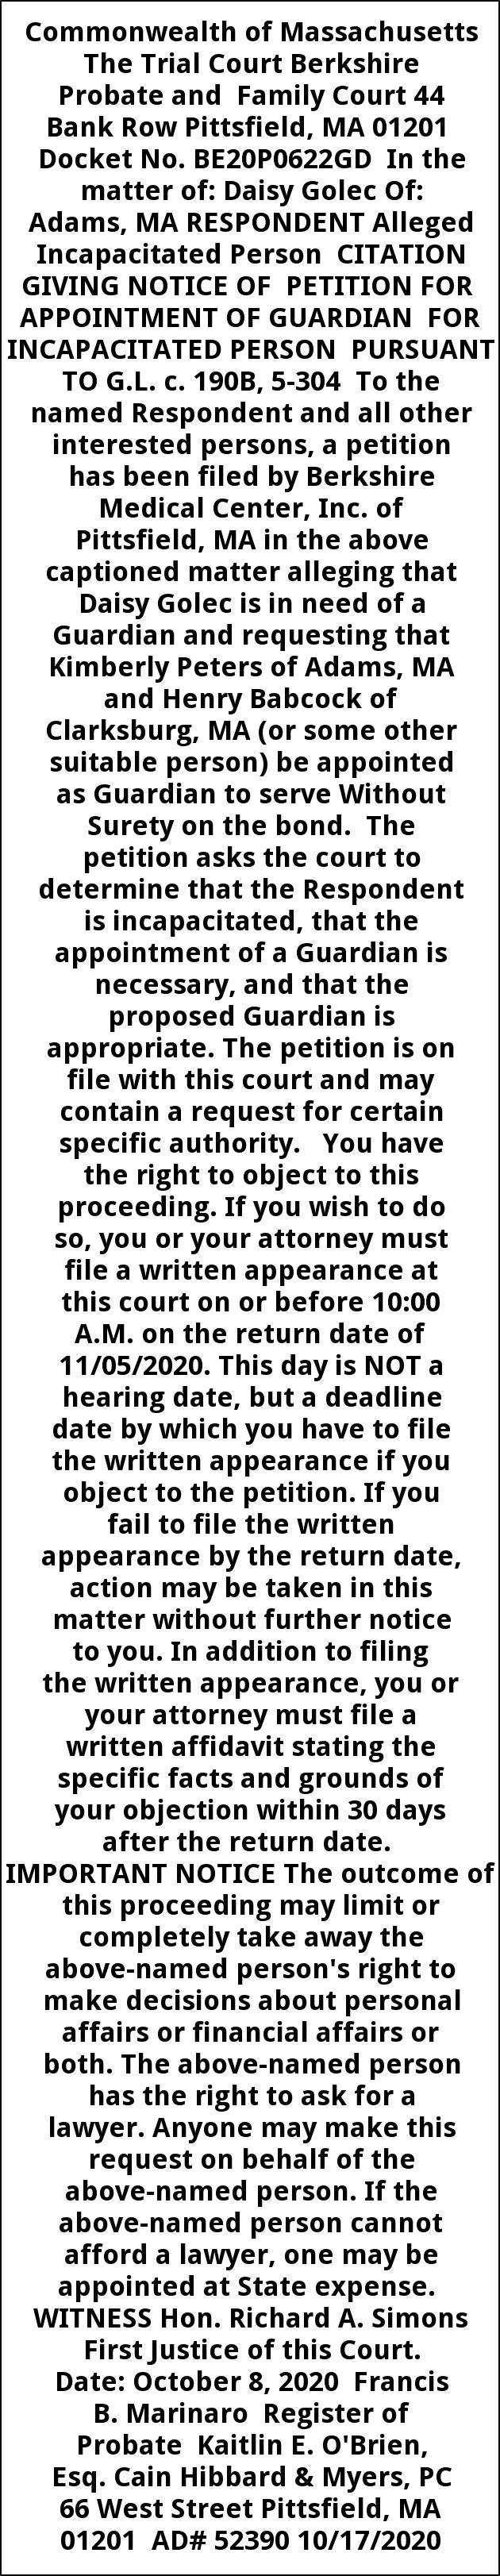 Citation Giving Notice Of Petition for Appointment